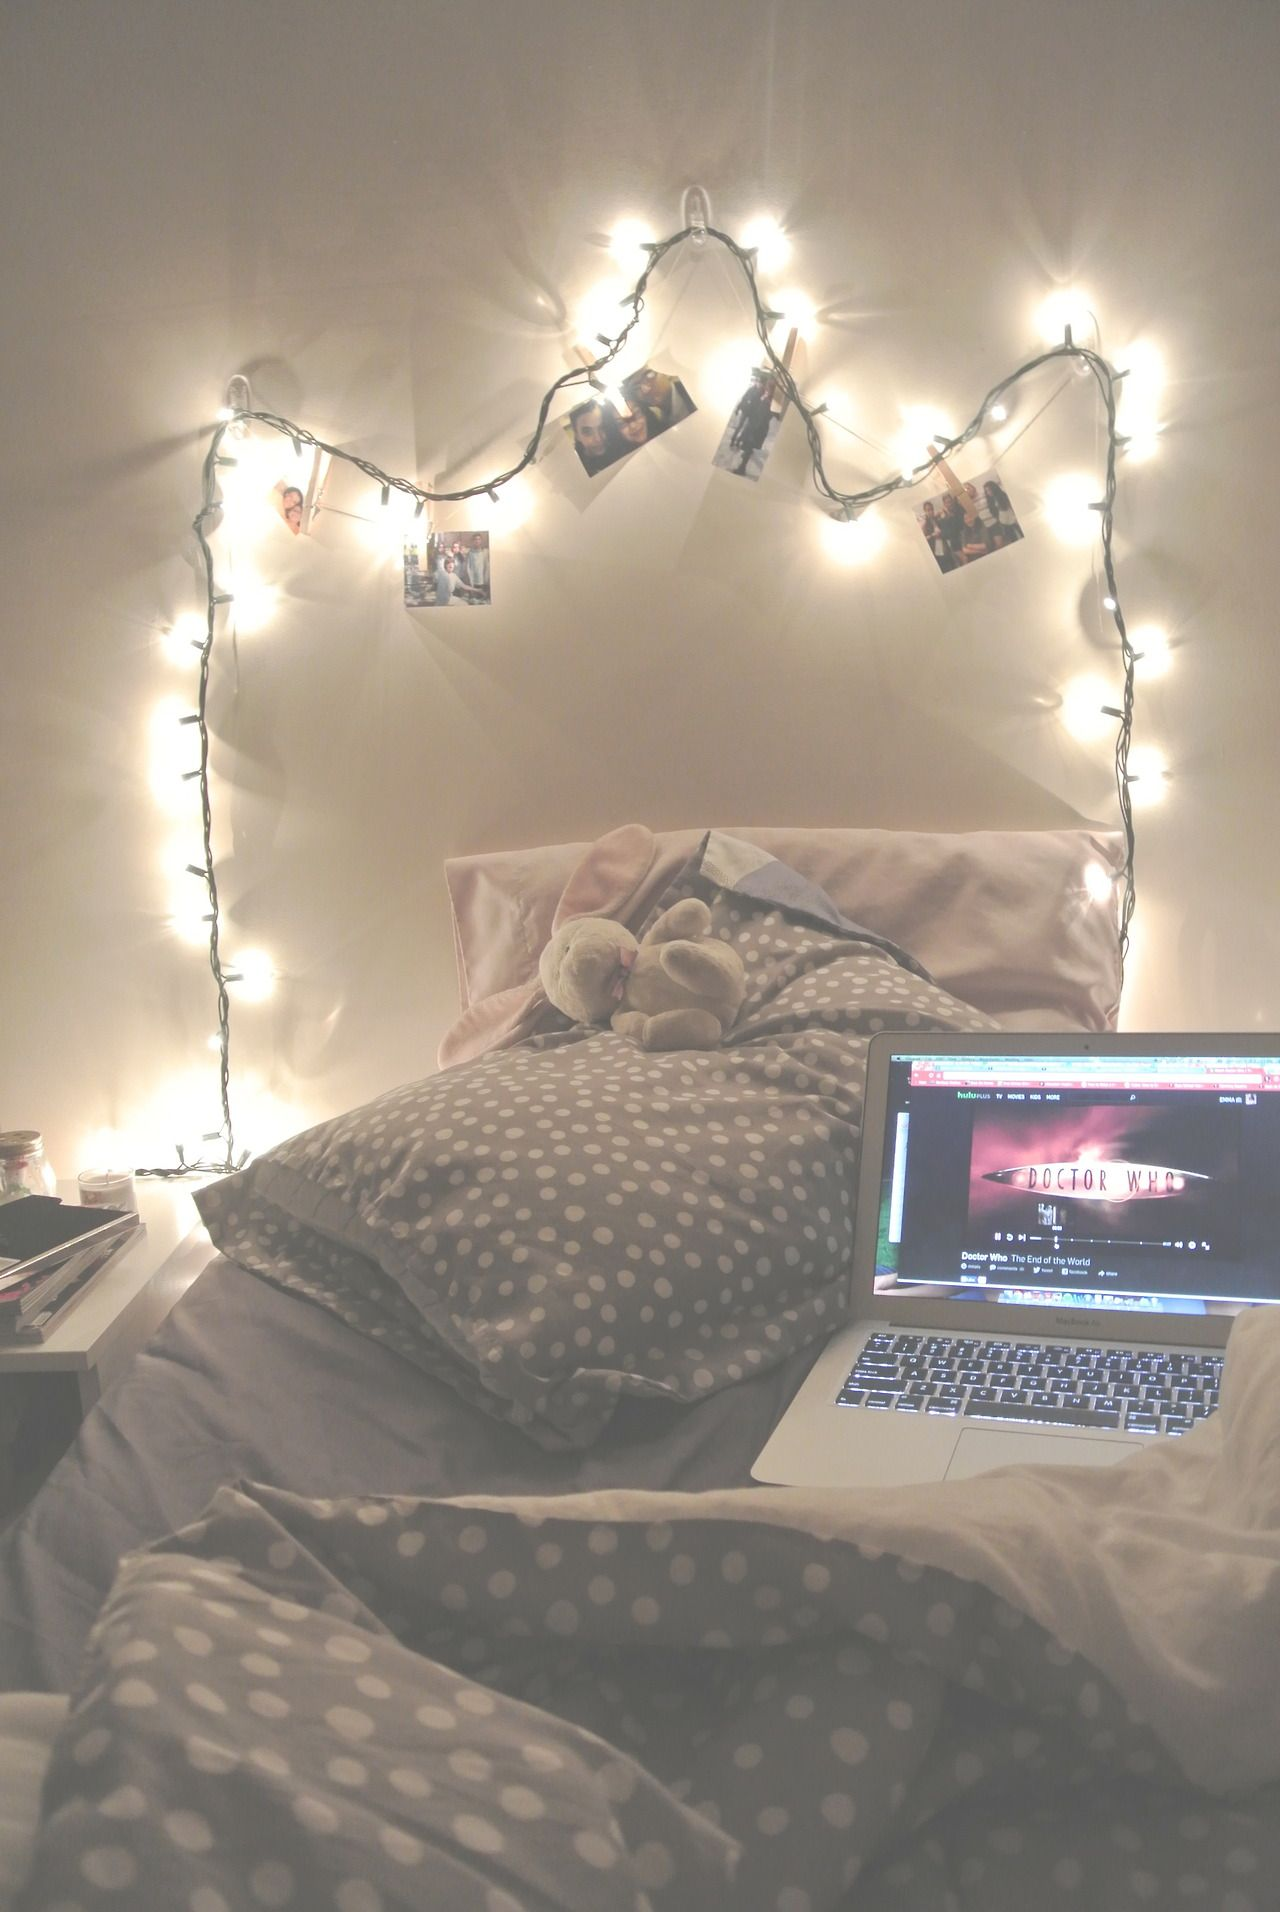 Tumblr bedrooms bedroom ideas pinterest don 39 t let string lights and dr who - Bedroom decorations tumblr ...